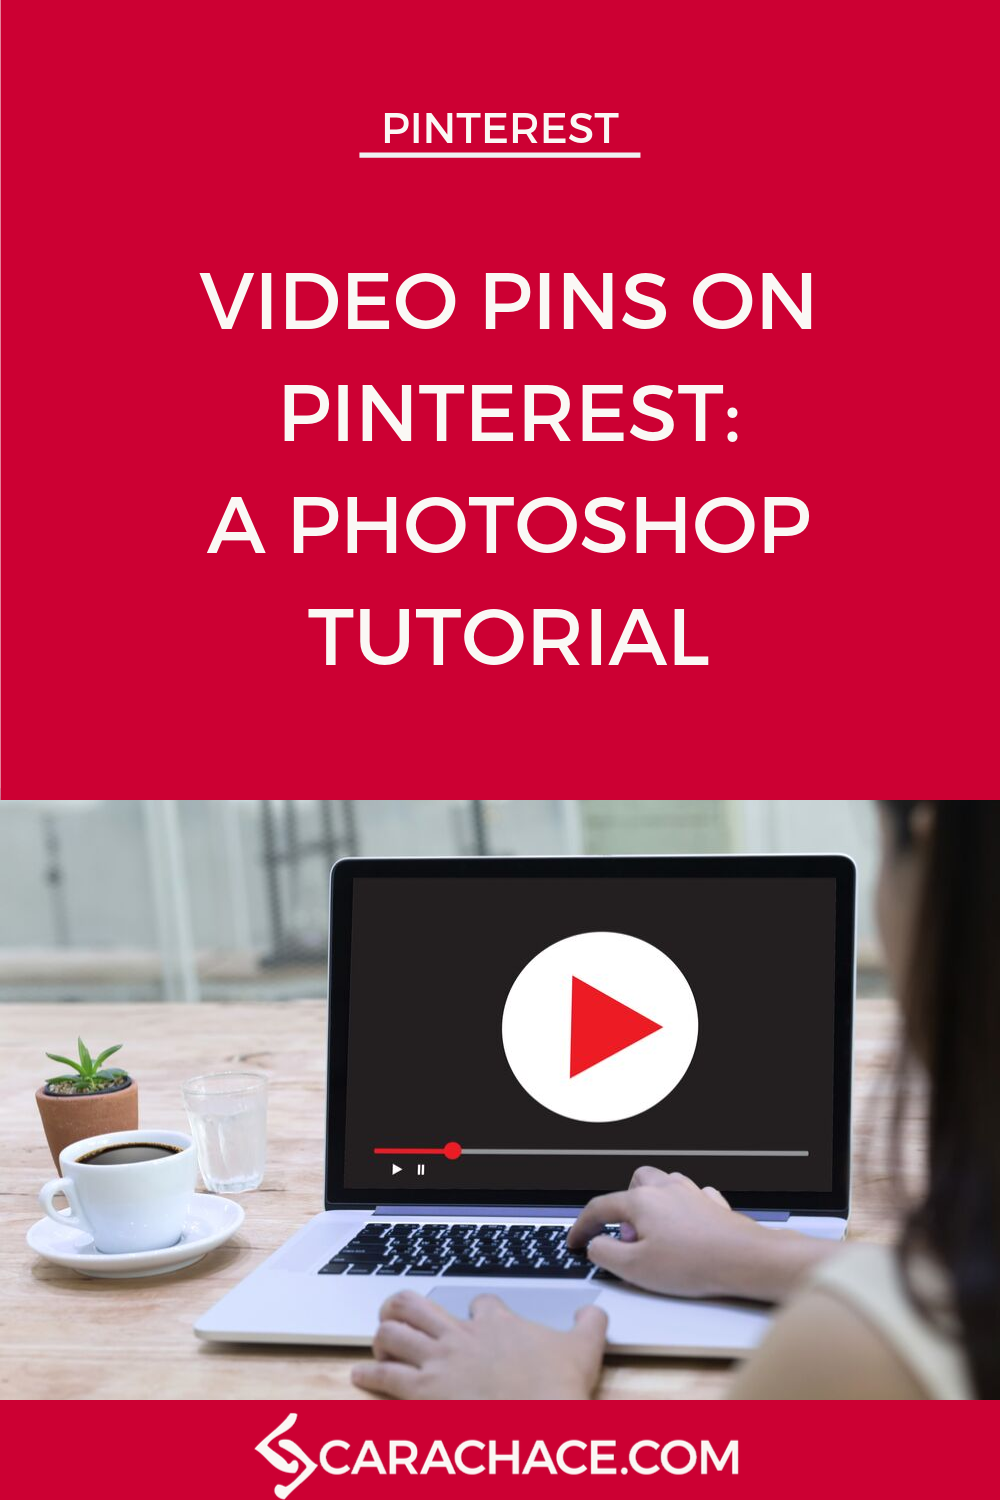 Video Pins Photoshop Pin 1.png